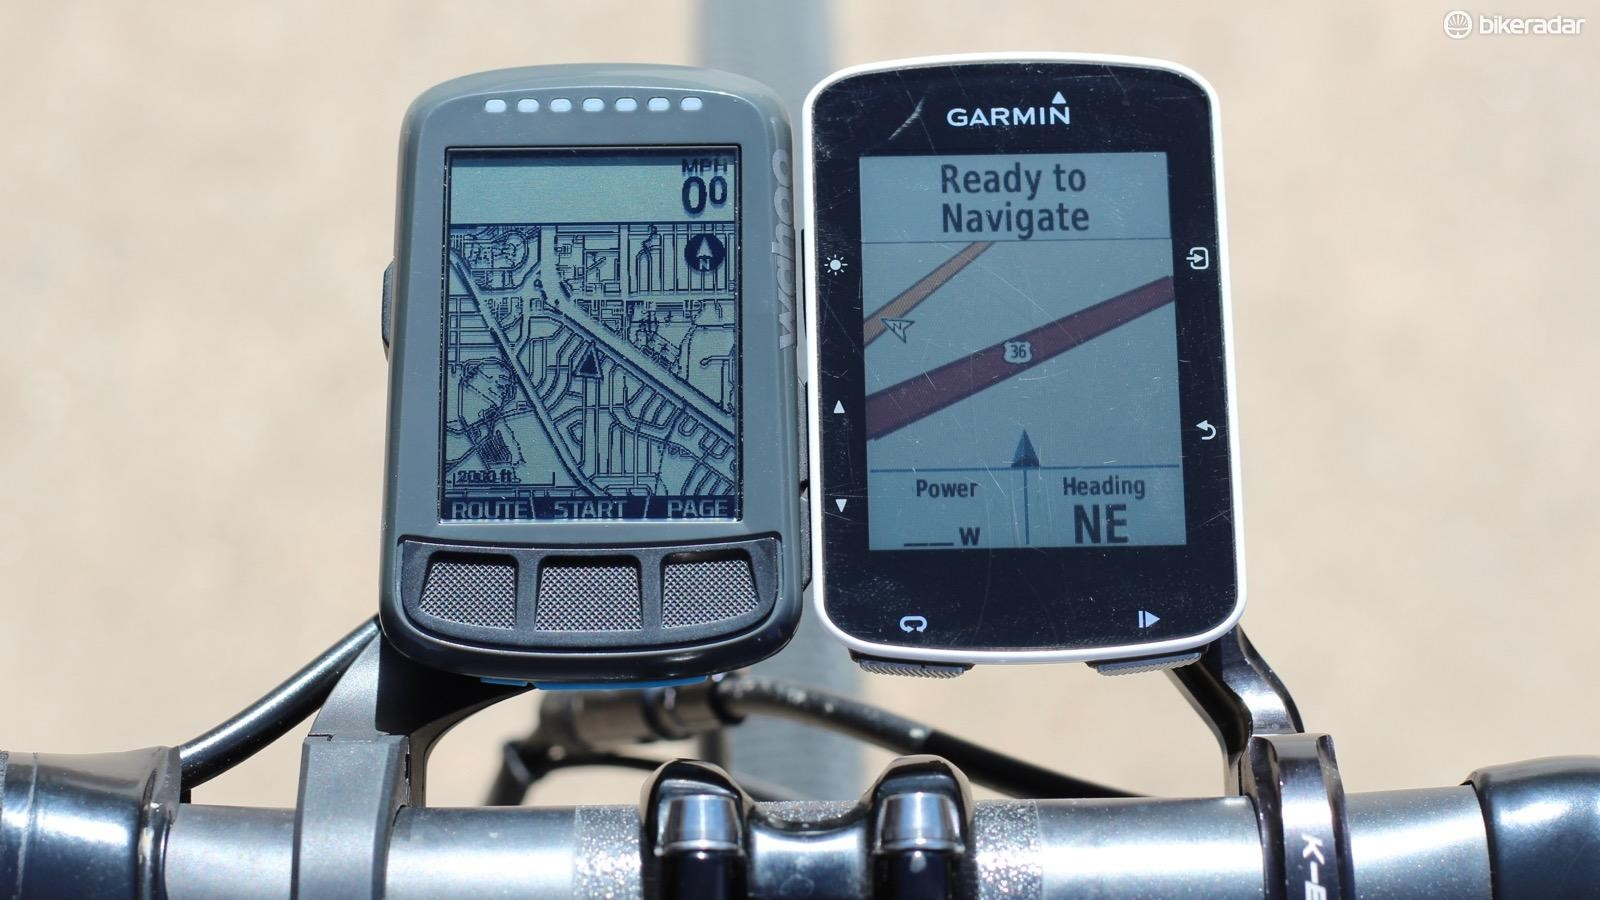 The Wahoo Elemnt Bolt (at left) is challenging the Edge 520 on many fronts, but the Garmin mapping remains superior although more expensive